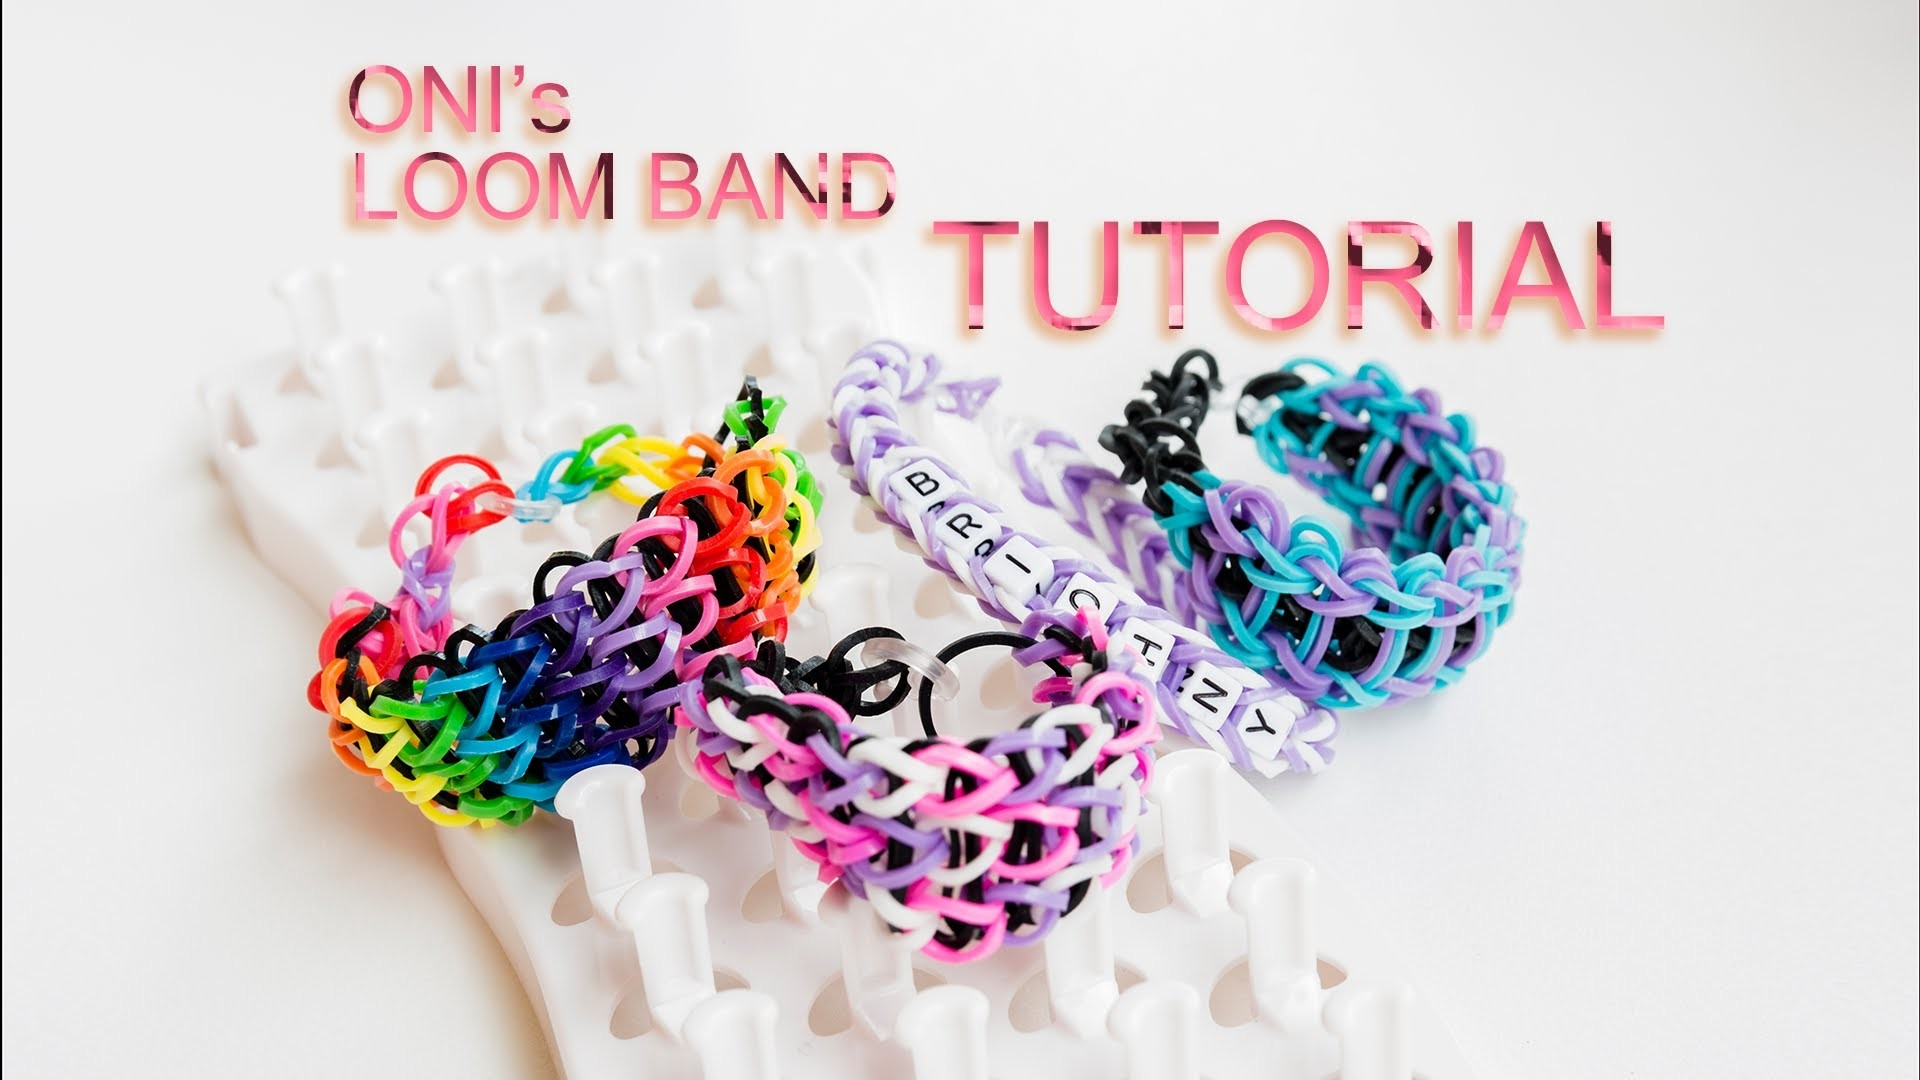 ONI's LOOM Band Tutorial